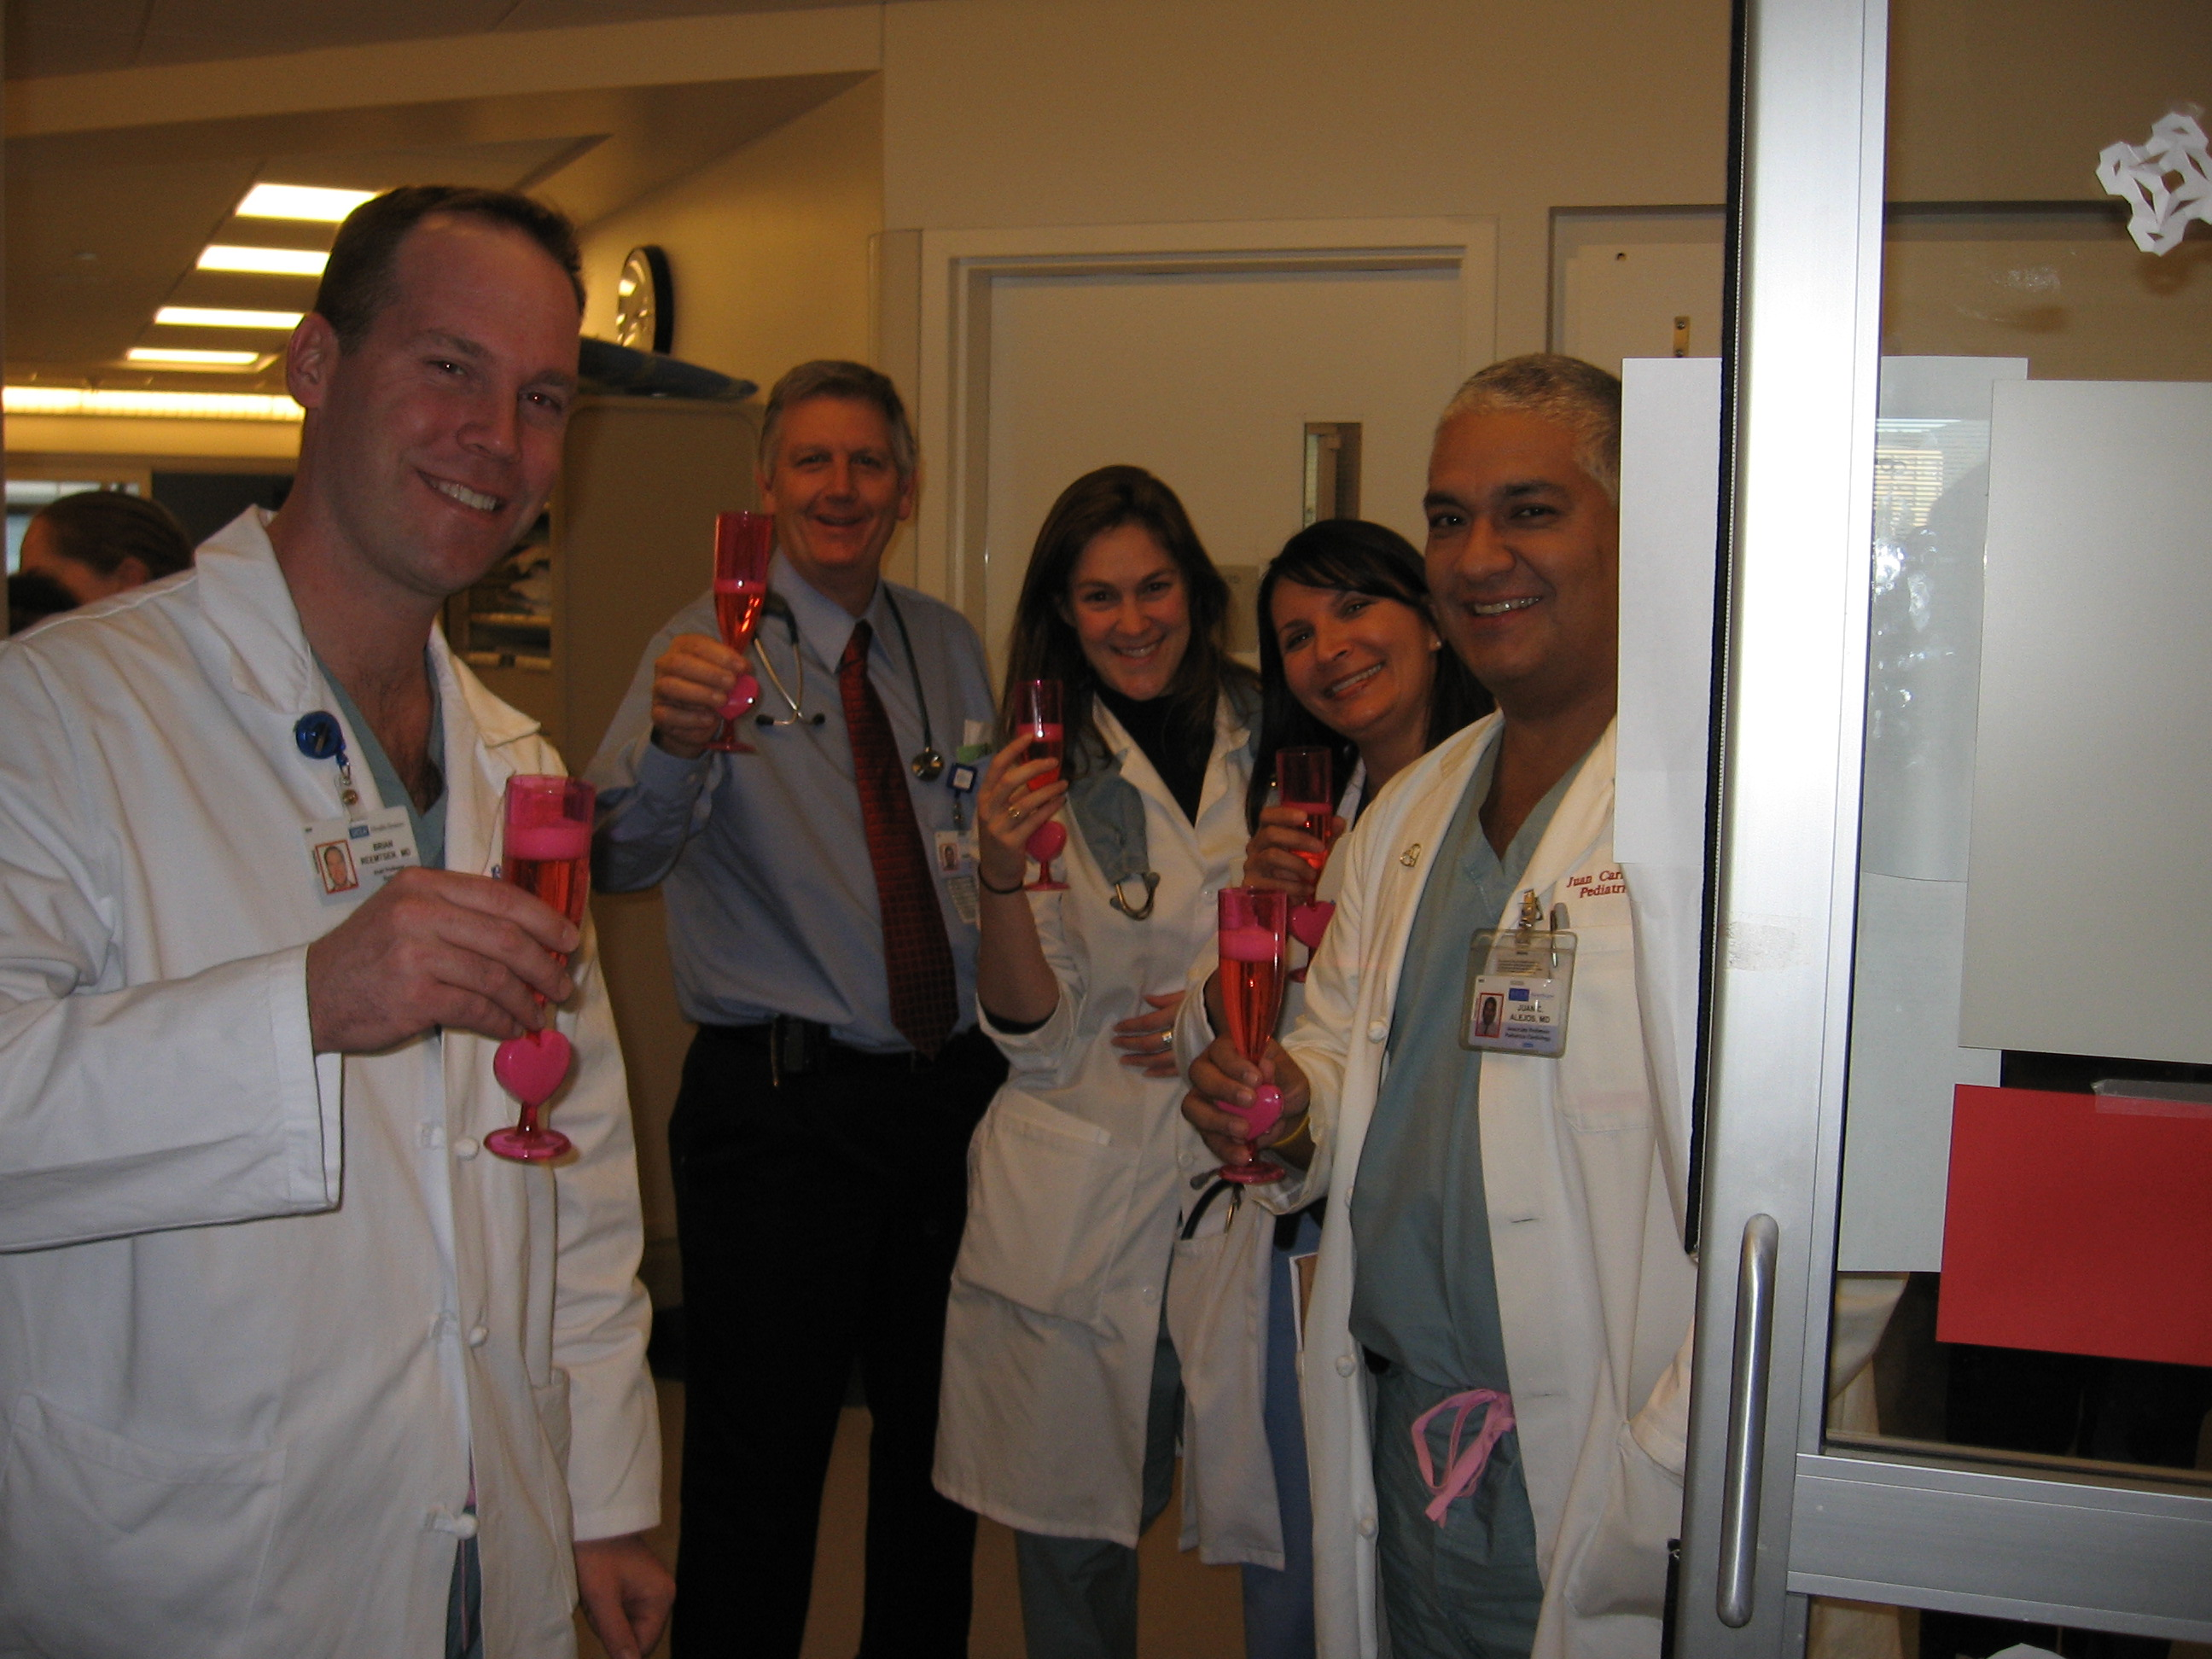 Celebration with the Docs during rounds!